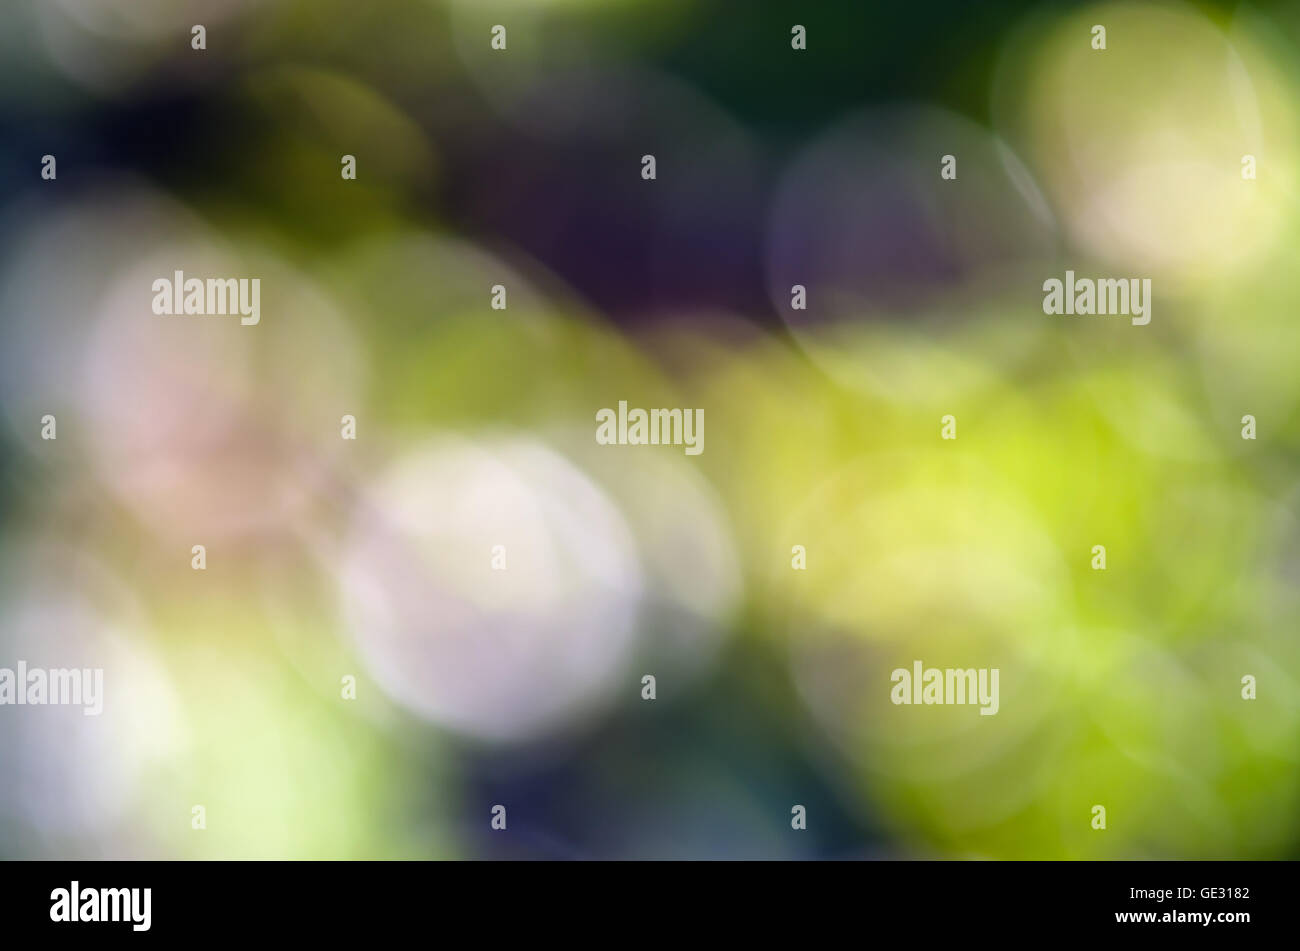 Abstract defocused background of tree, sky, light and sun shade for graphic usage - Stock Image